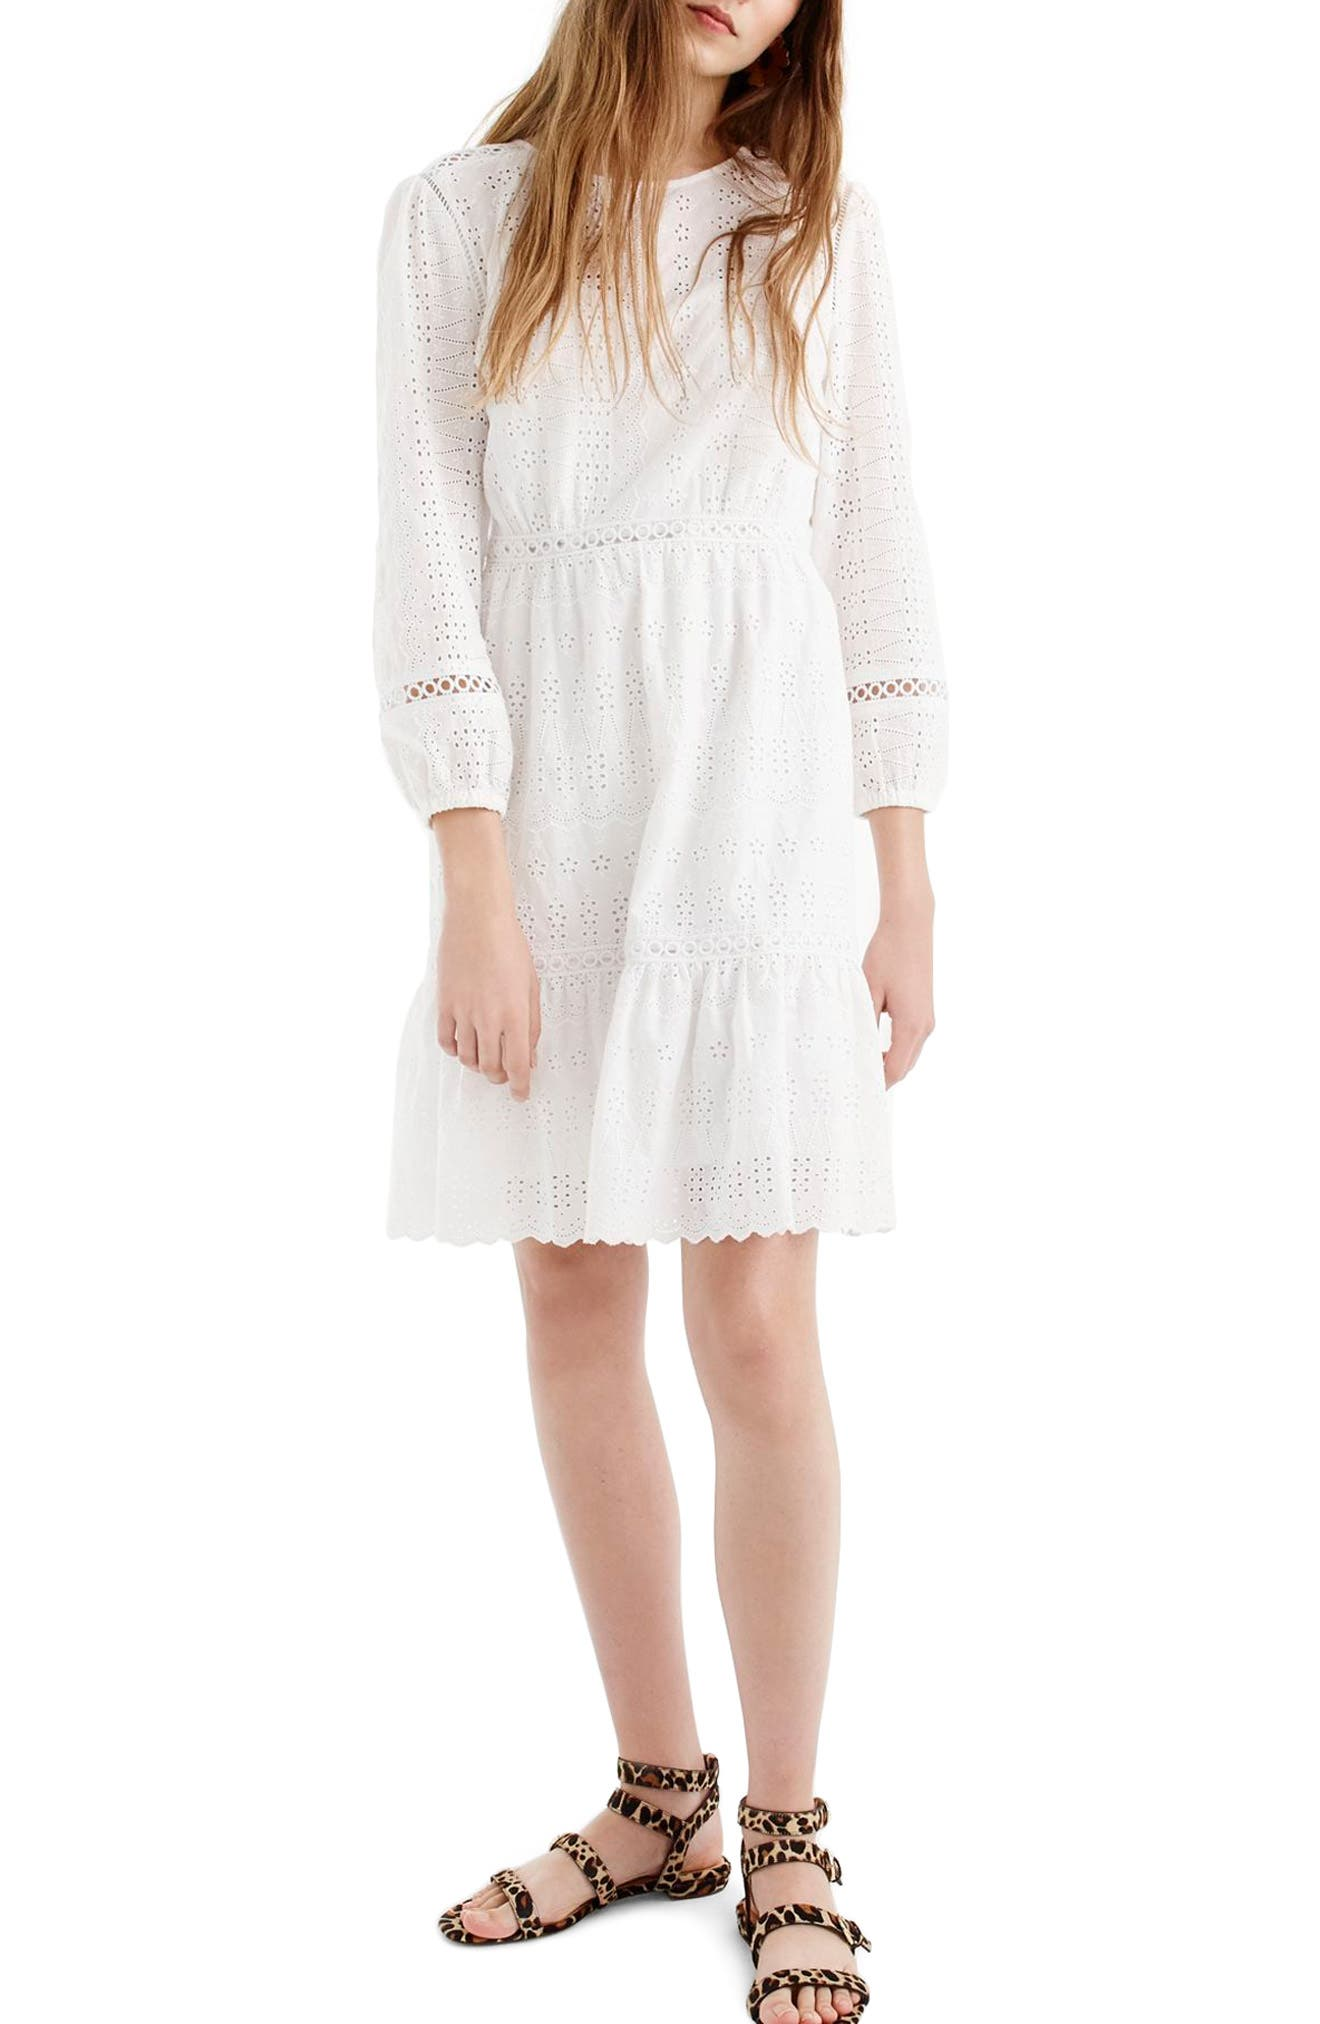 J.Crew Long Sleeve Embroidered Dress (Regular & Petite)